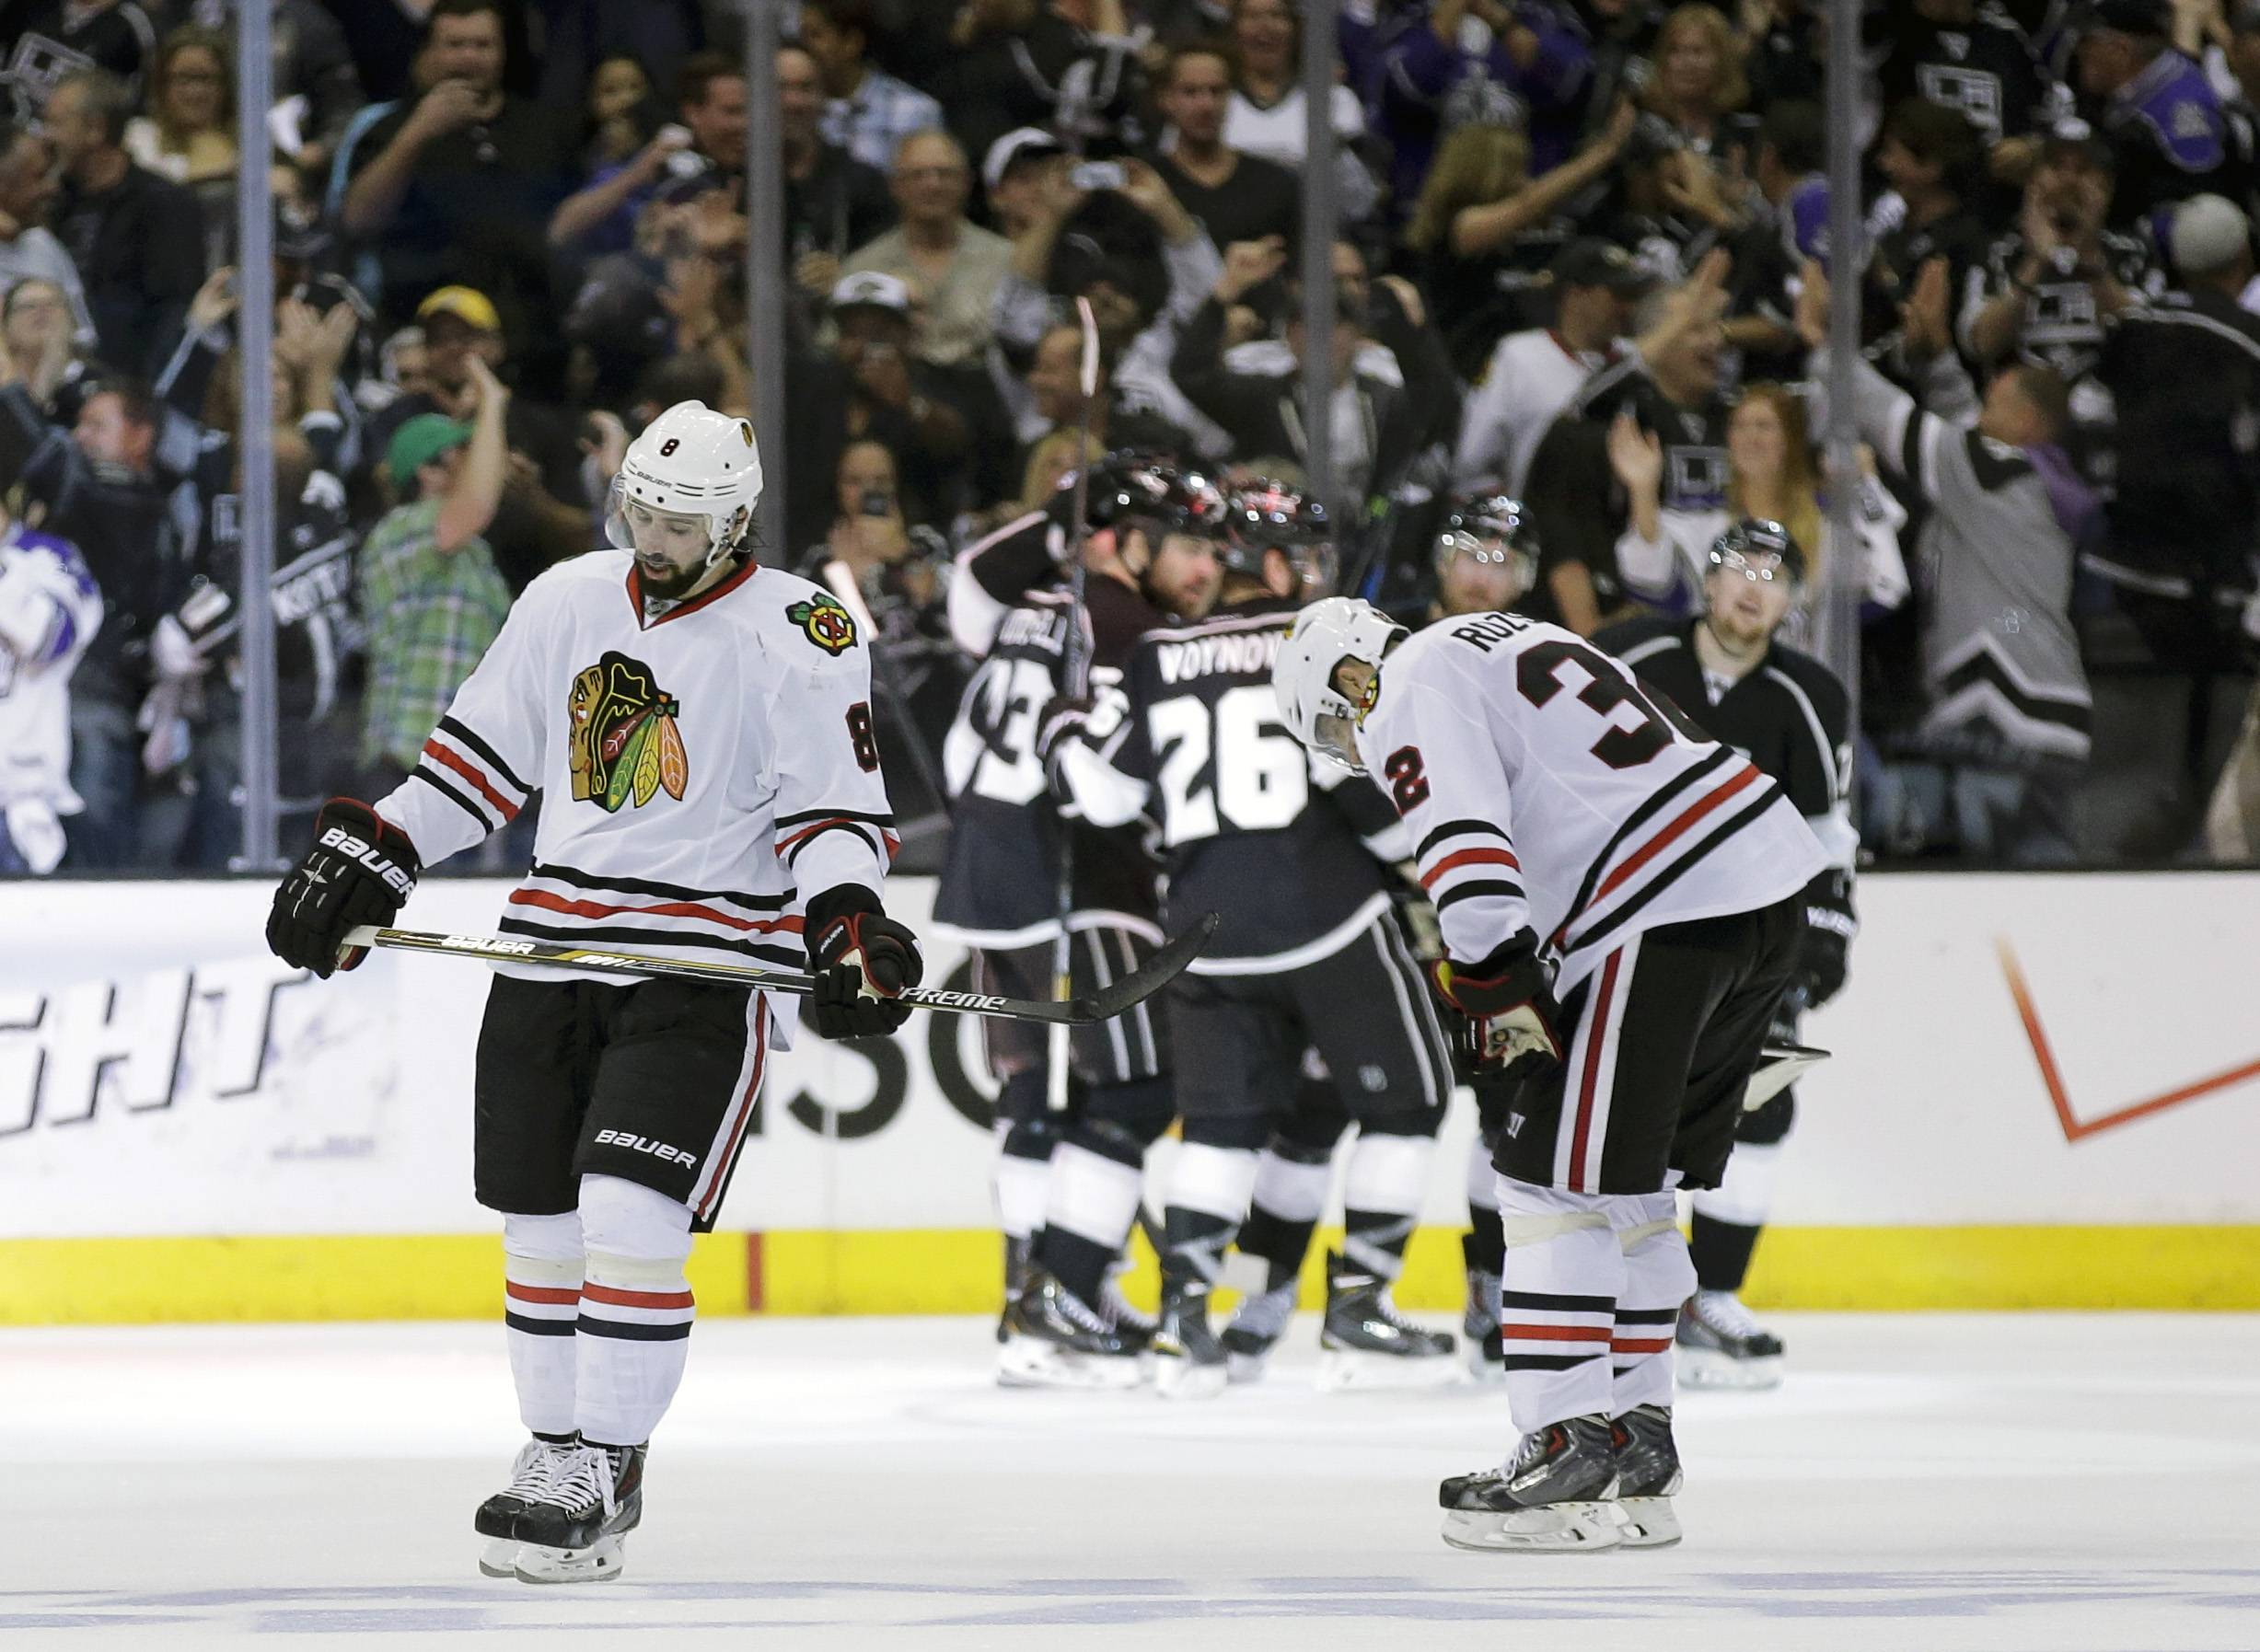 Chicago Blackhawks defenseman Nick Leddy, left, and defenseman Michal Rozsival hang theirs heads as members of the Los Angeles Kings celebrate center Jeff Carter's empty net goal during the third period of Game 4 of the Western Conference finals of the NHL hockey Stanley Cup playoffs in Los Angeles, Monday, May 26, 2014. The Kings won 5-2.